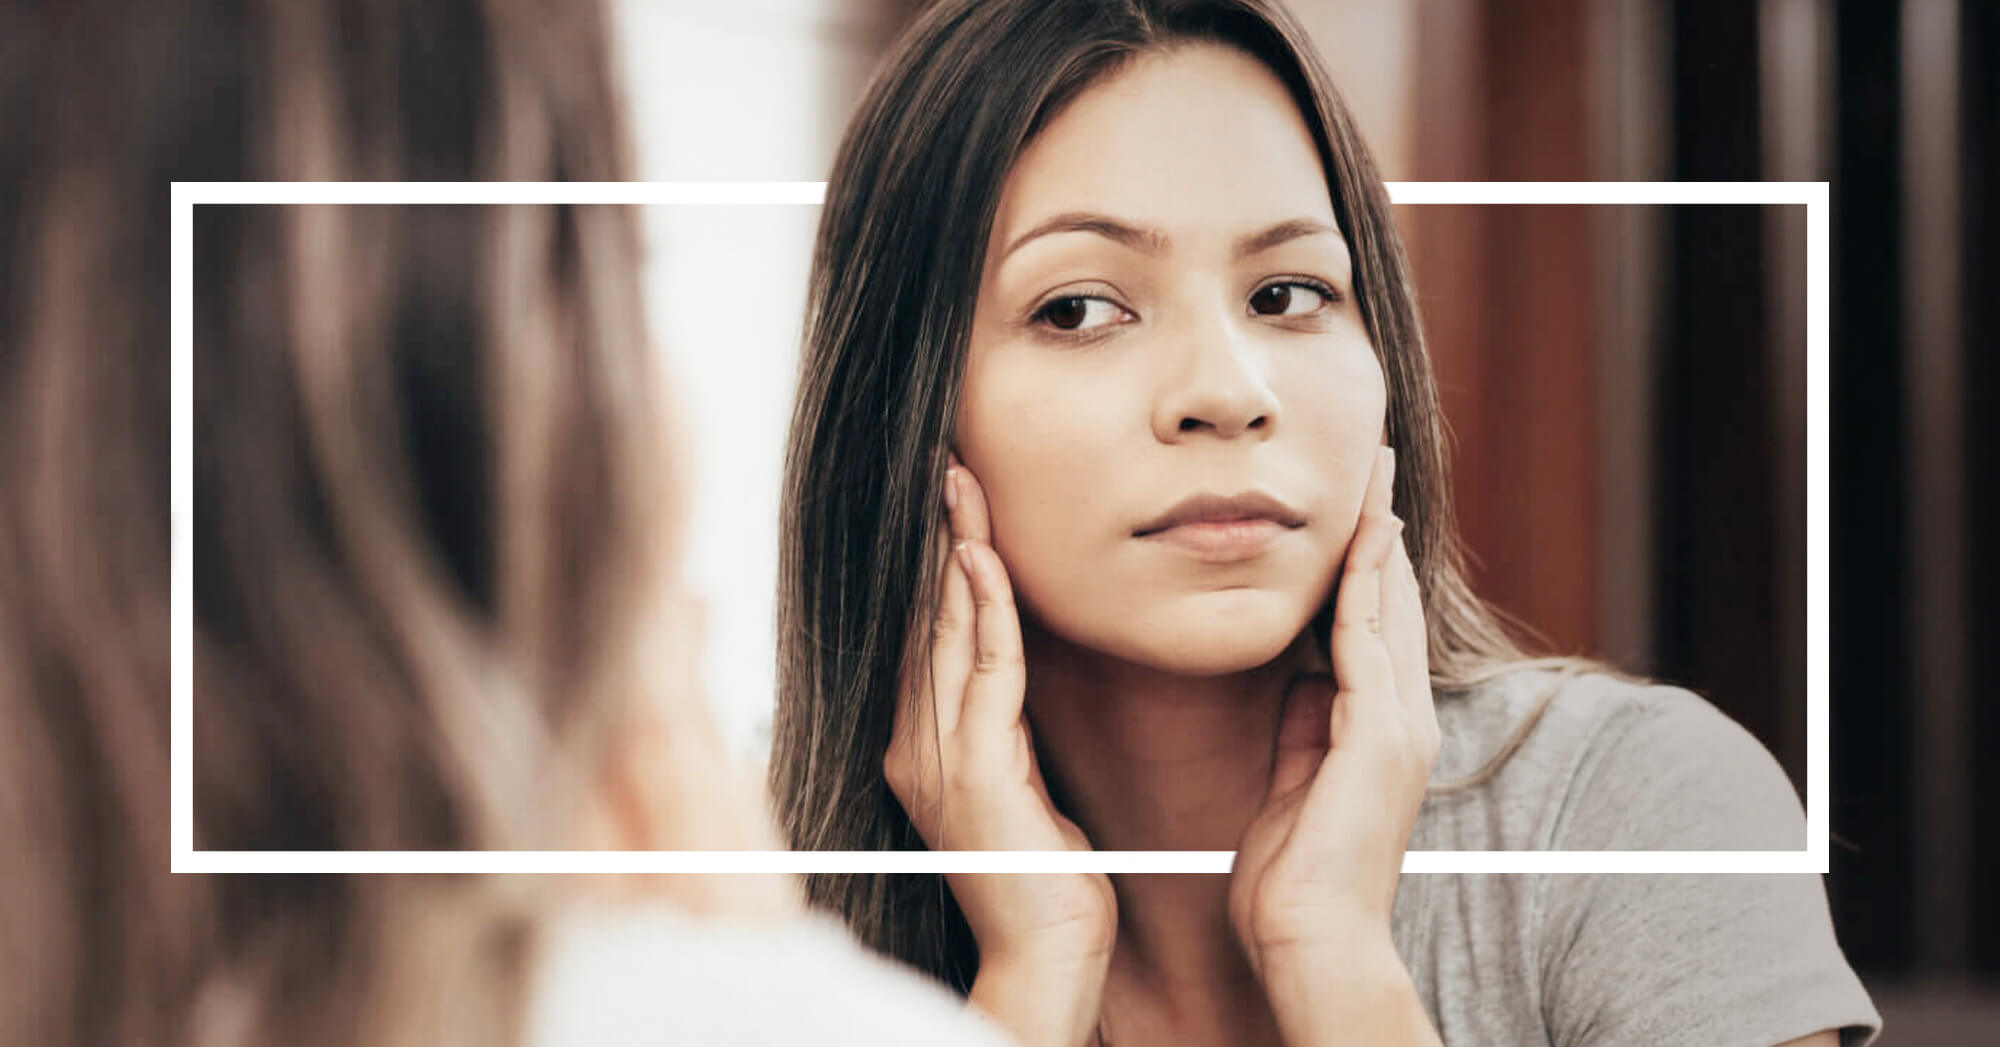 ARE VITAMIN DEFICIENCIES THE SOURCE OF YOUR SKIN PROBLEMS?